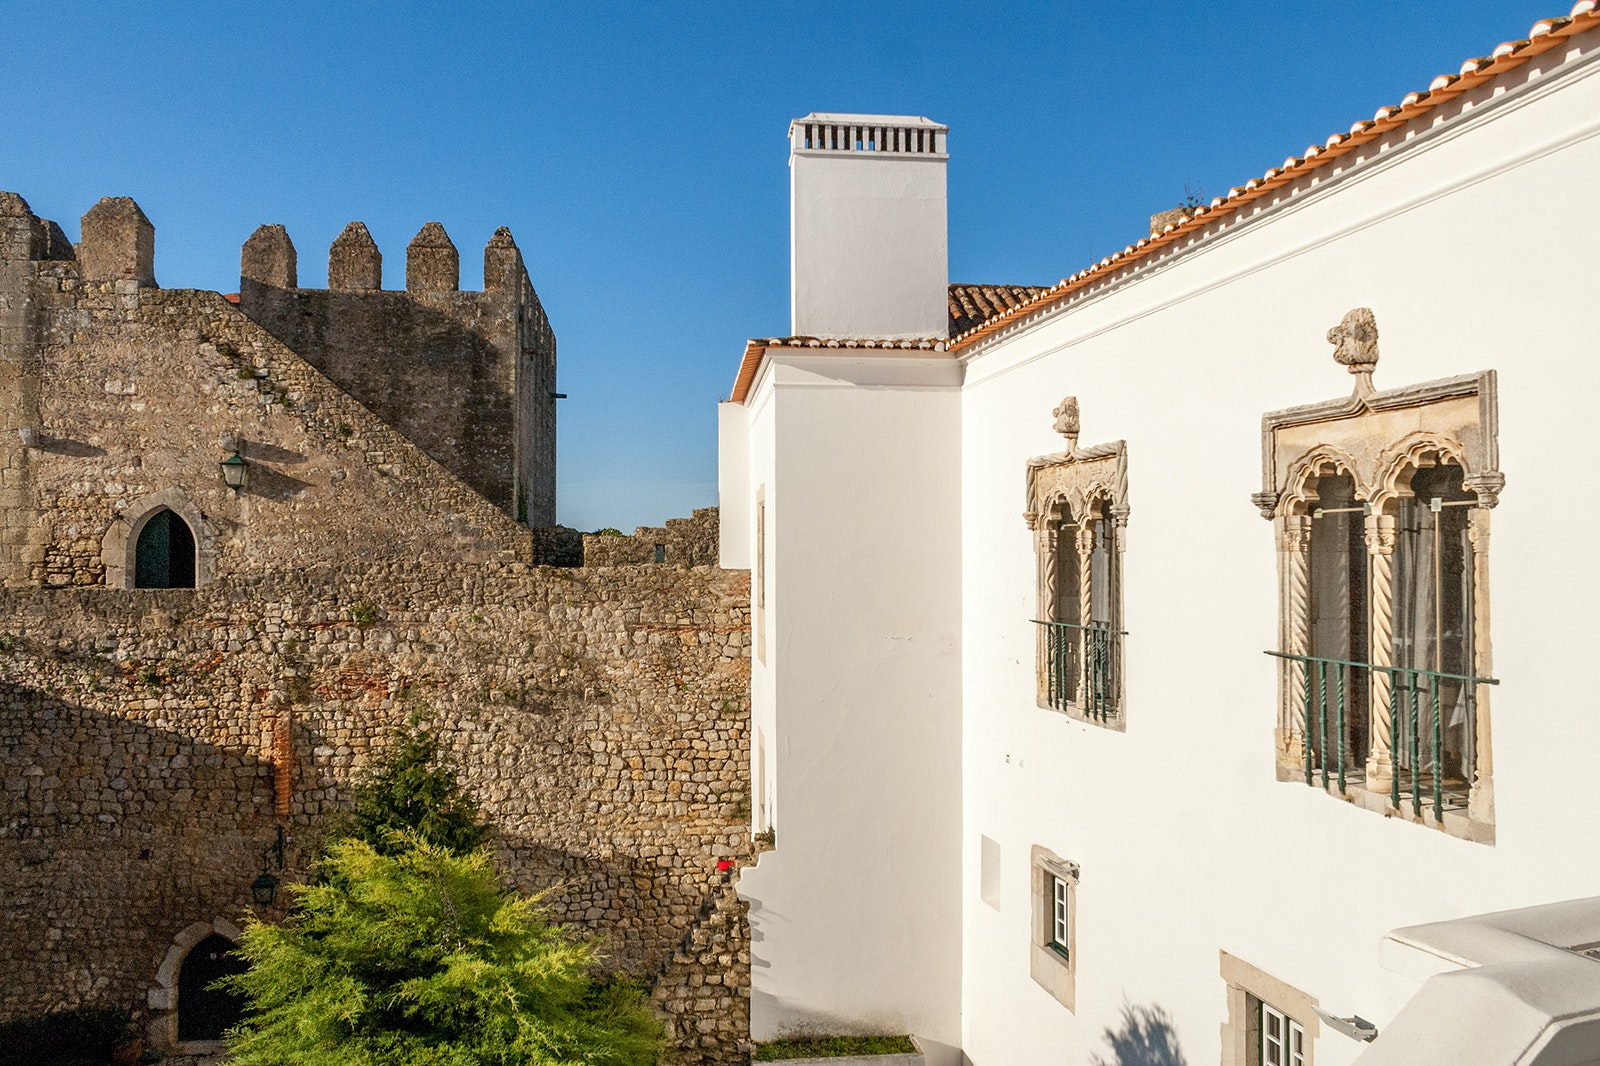 The entire town of Óbidos, including its castle, was a gift from King Dinis to his queen in 1282.